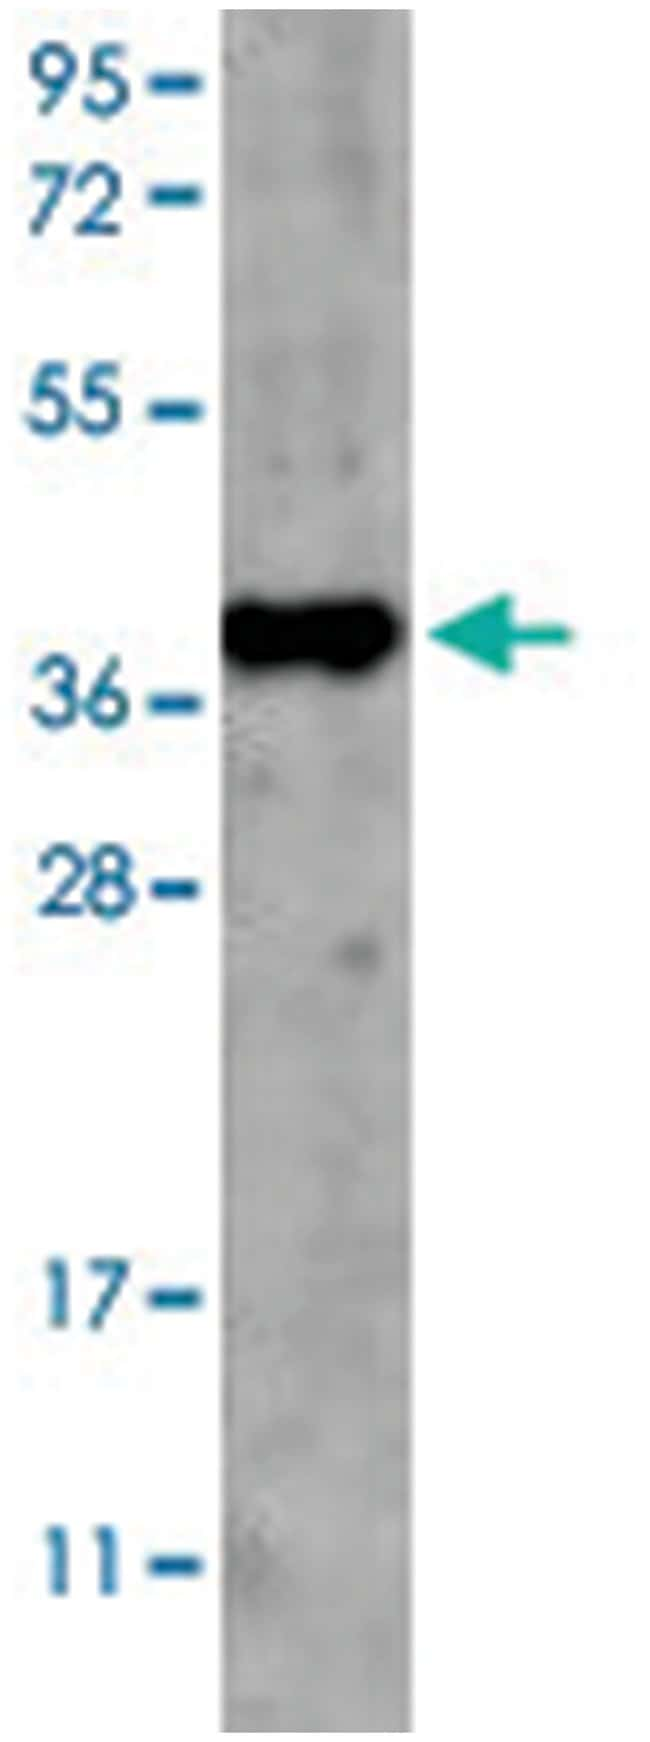 GDF15 Rabbit anti-Human, Mouse, Polyclonal Antibody, Abnova 100µg;